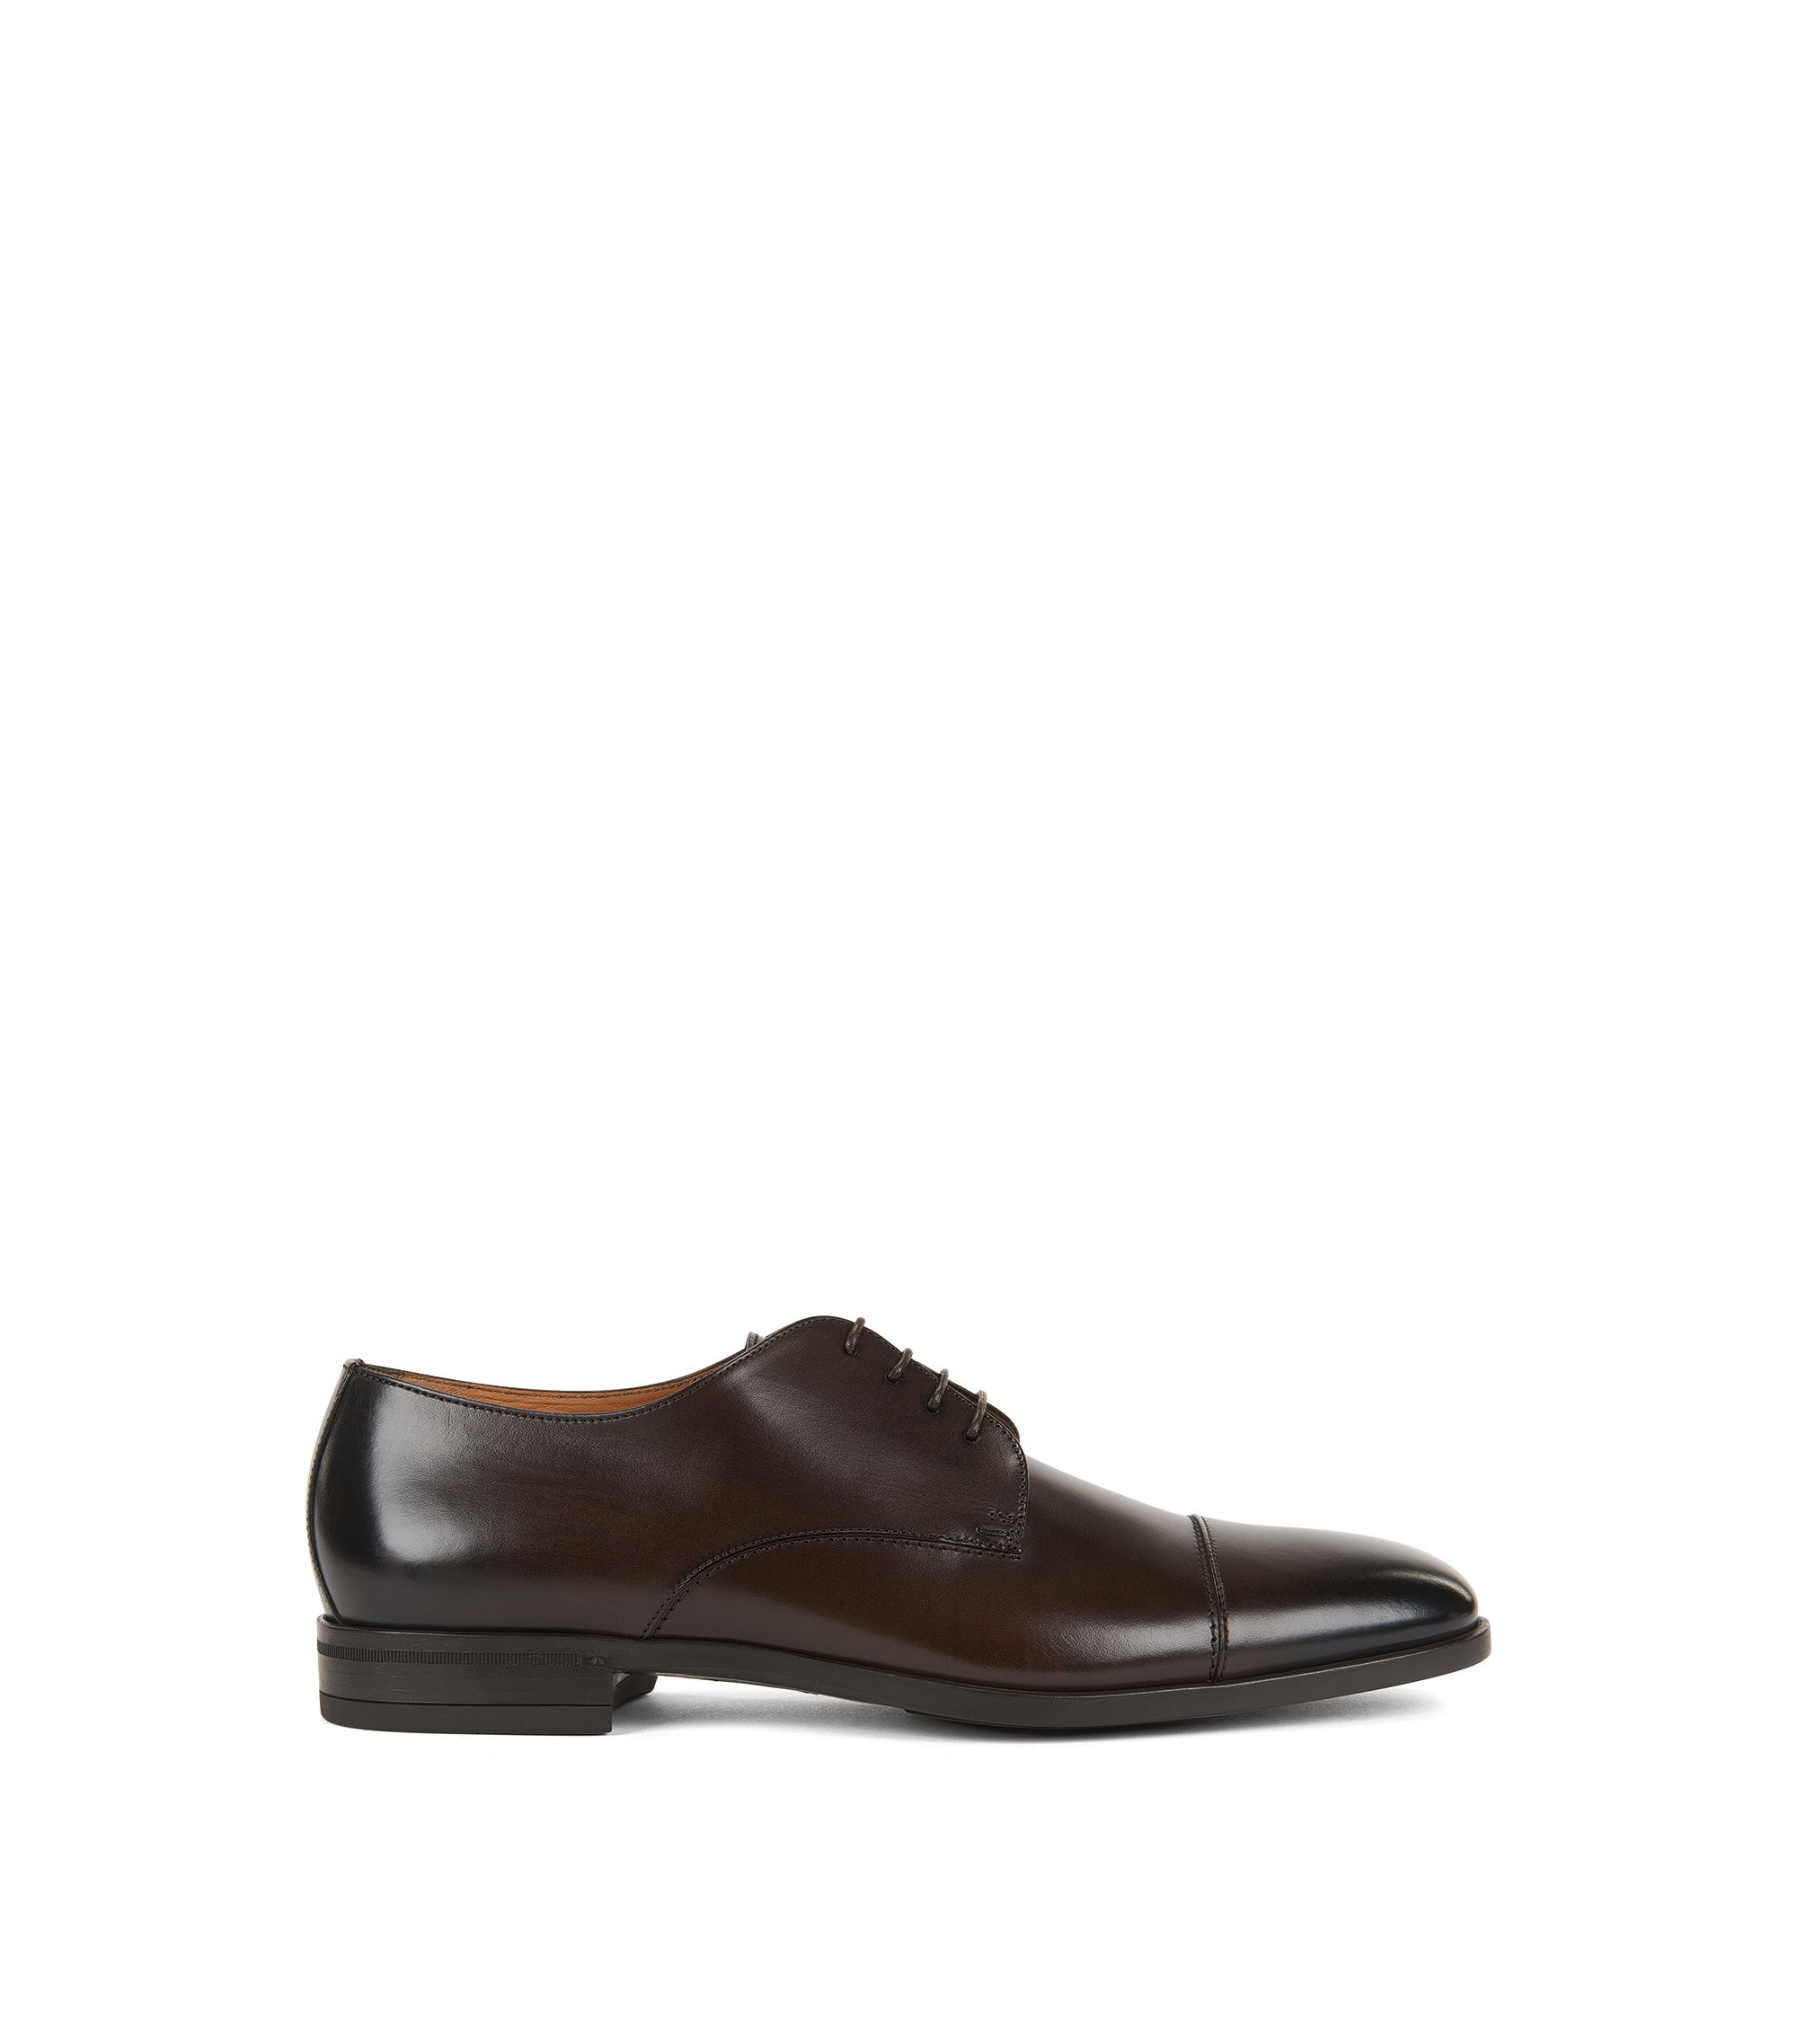 Cap-Toe Derby Shoe | Kensington, Dark Brown